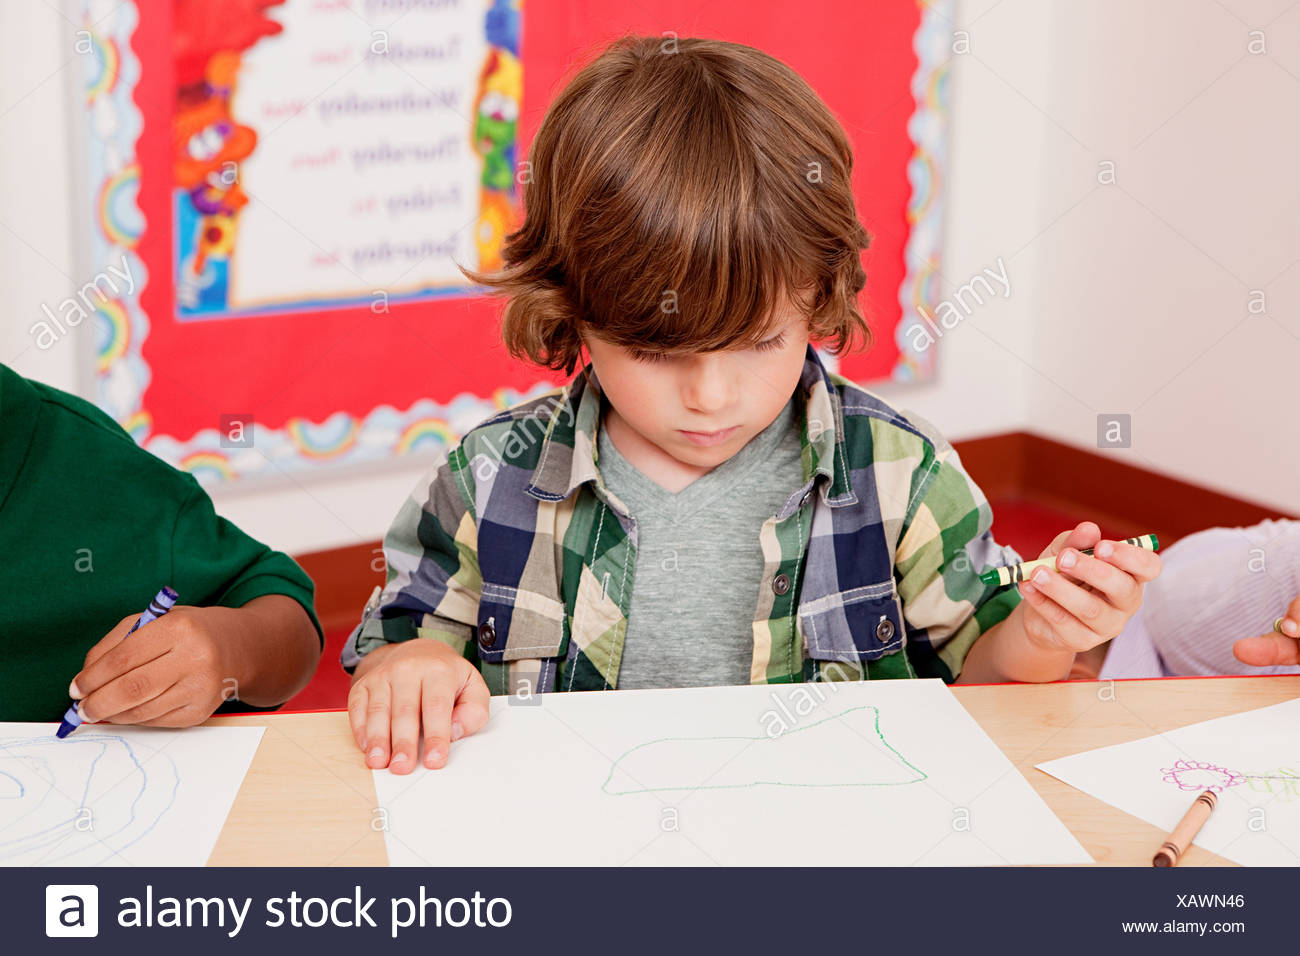 Boy drawing a picture in class - Stock Image